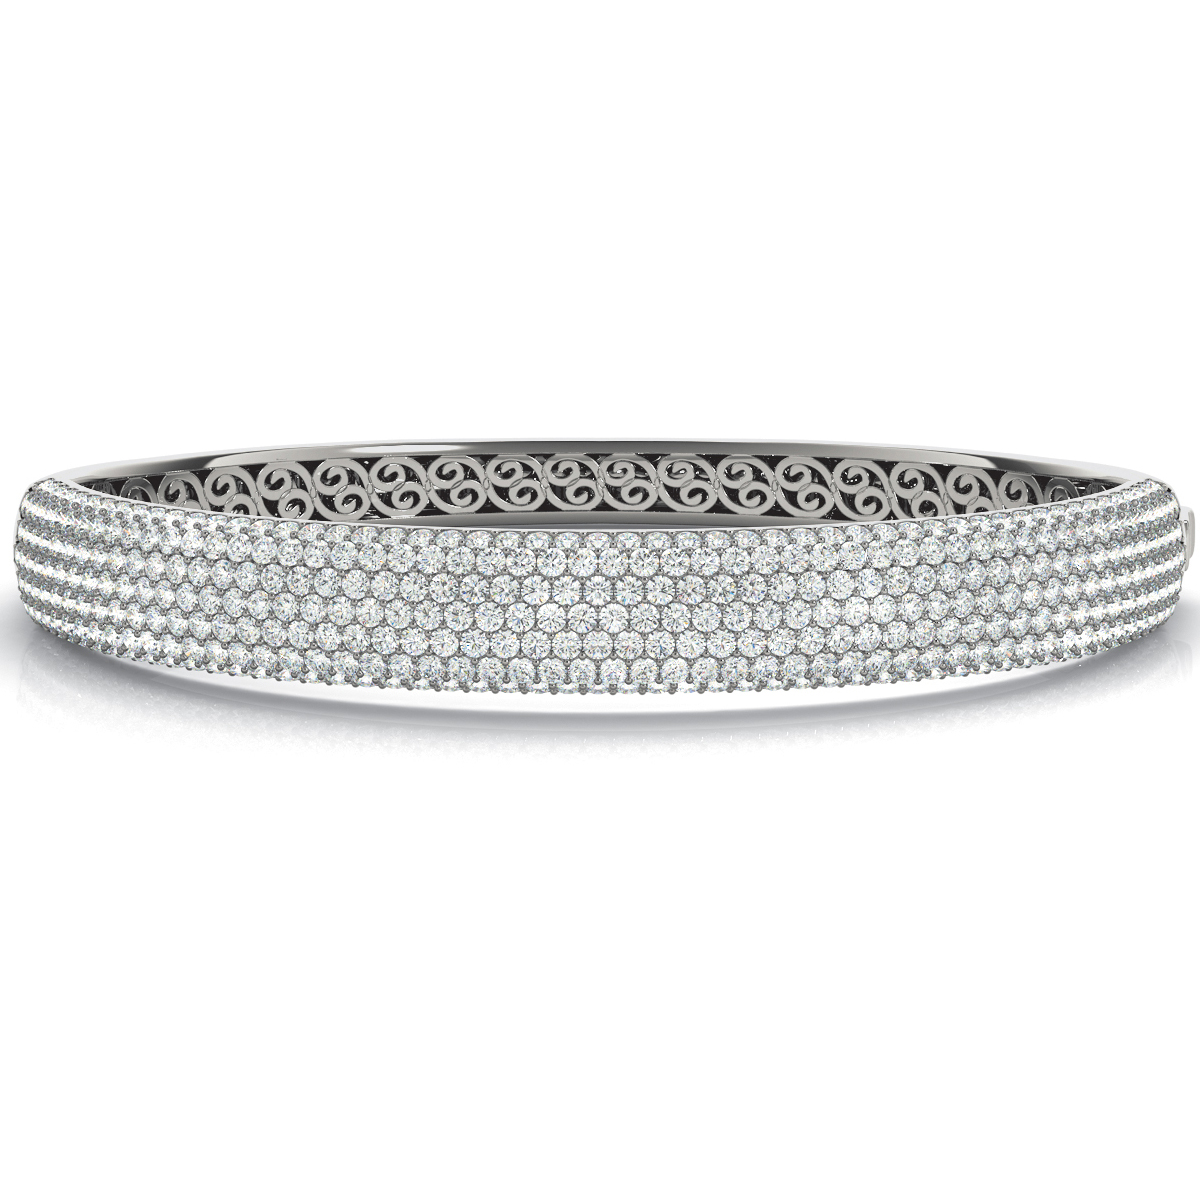 14k-white-gold-multi-row-bangles-and-bracelet-70012